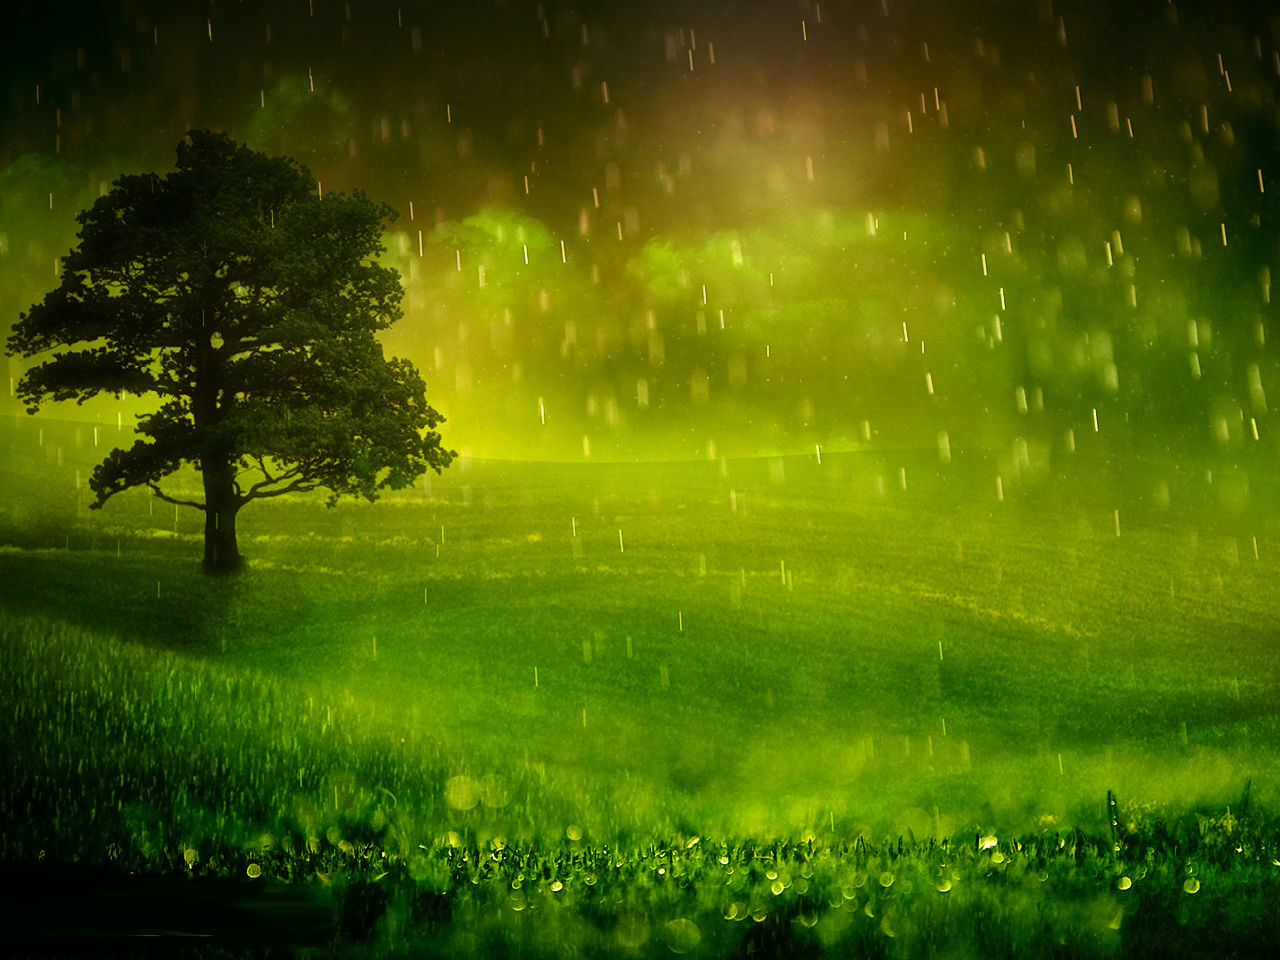 Hd wallpaper rain - Rainy Day Hd Wallpapers Pictures Images Backgrounds Photos